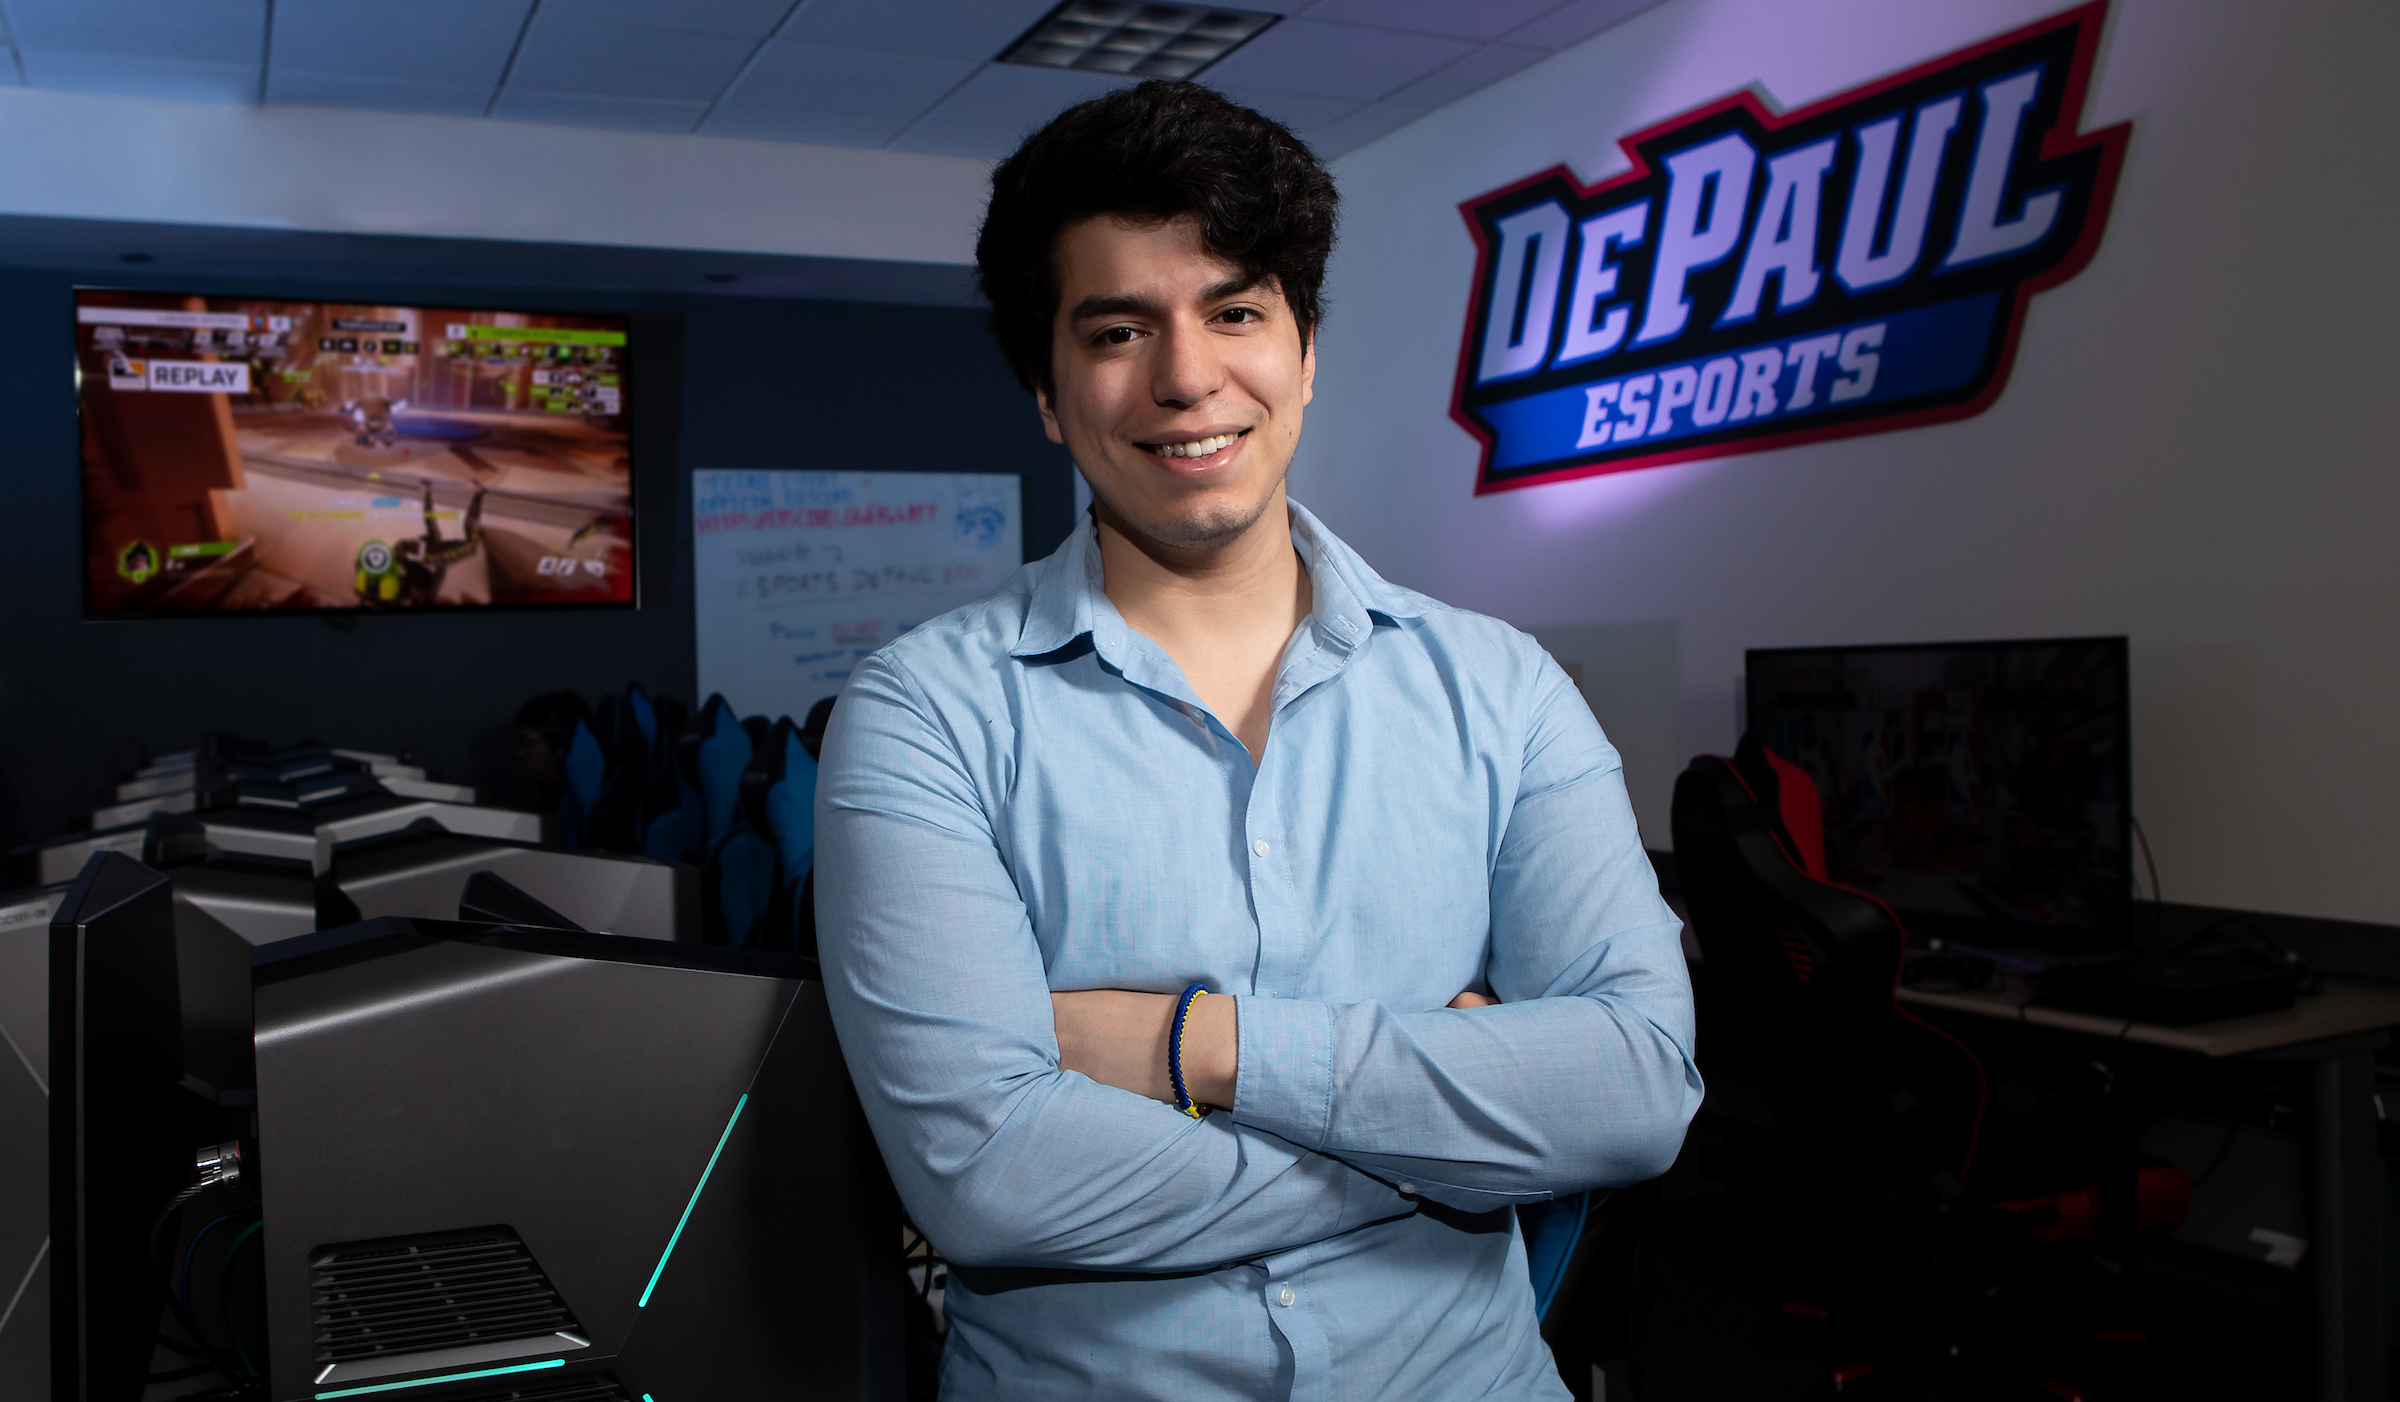 Portrait of Esteban Perez in DePaul Esports Gaming Center